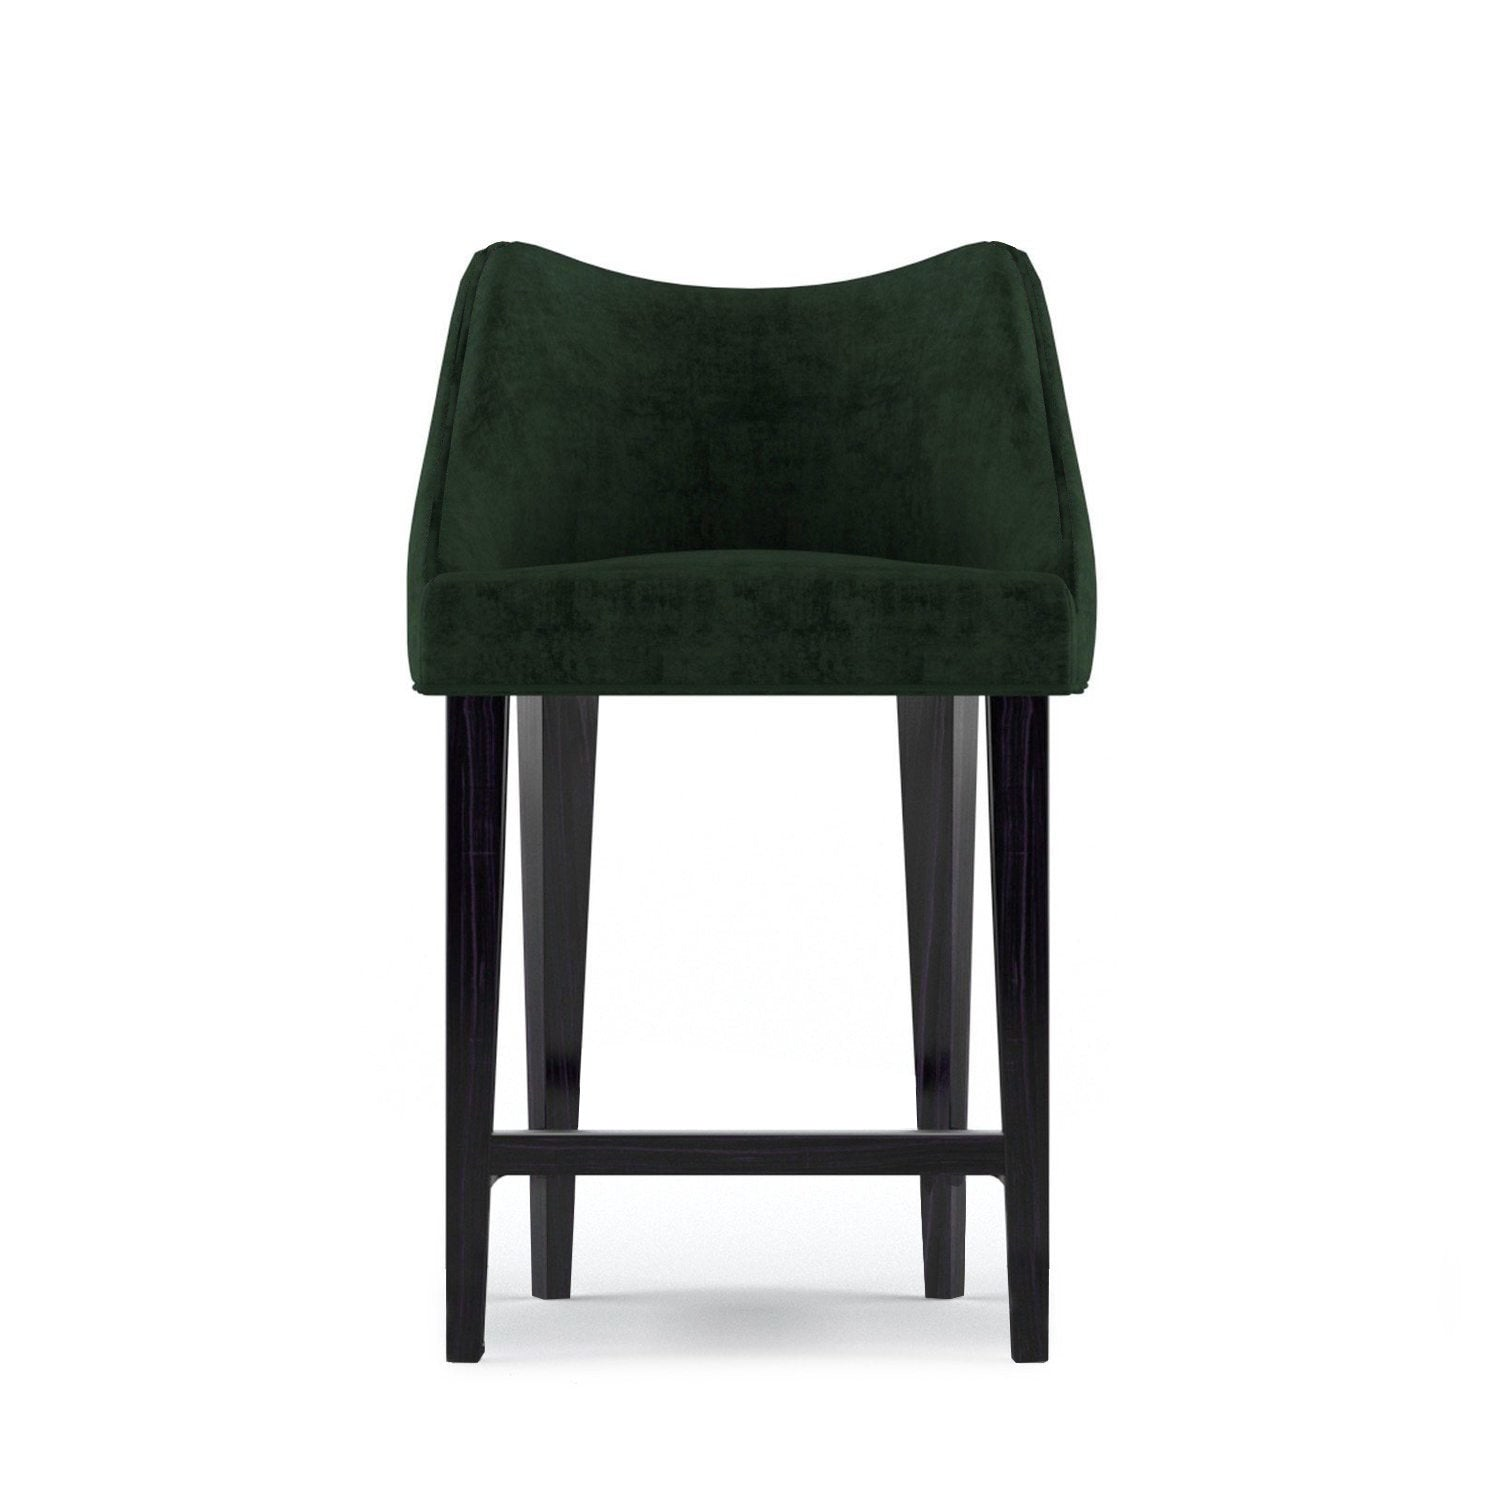 MIDDLETON BAR & COUNTER STOOL